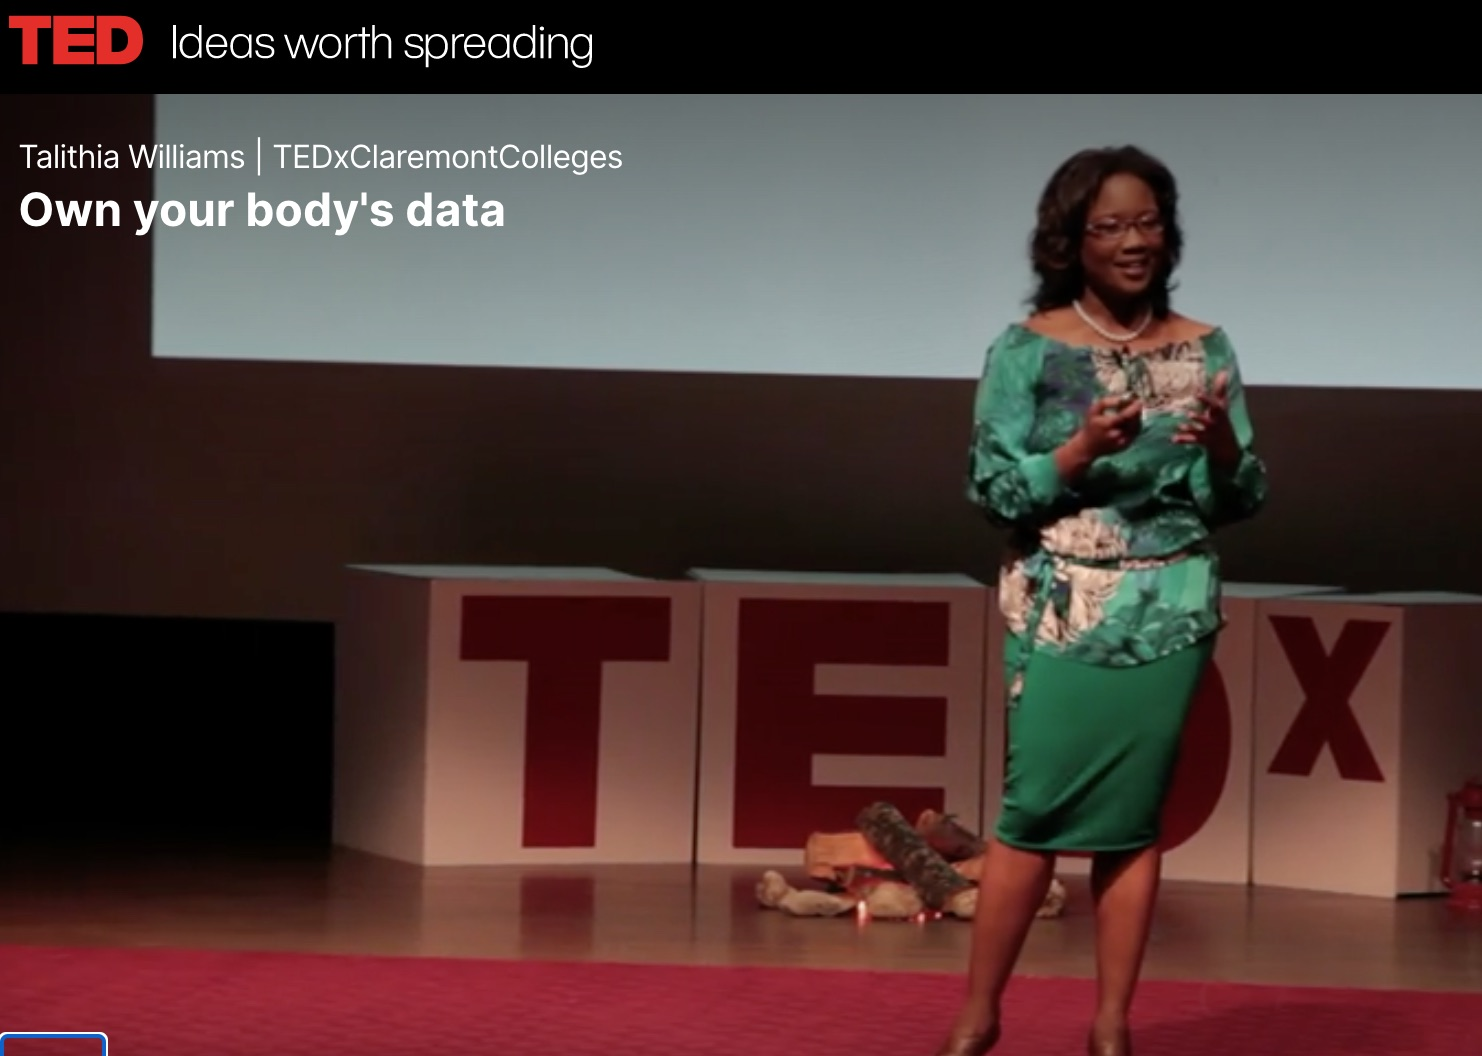 Own Your Body's Data